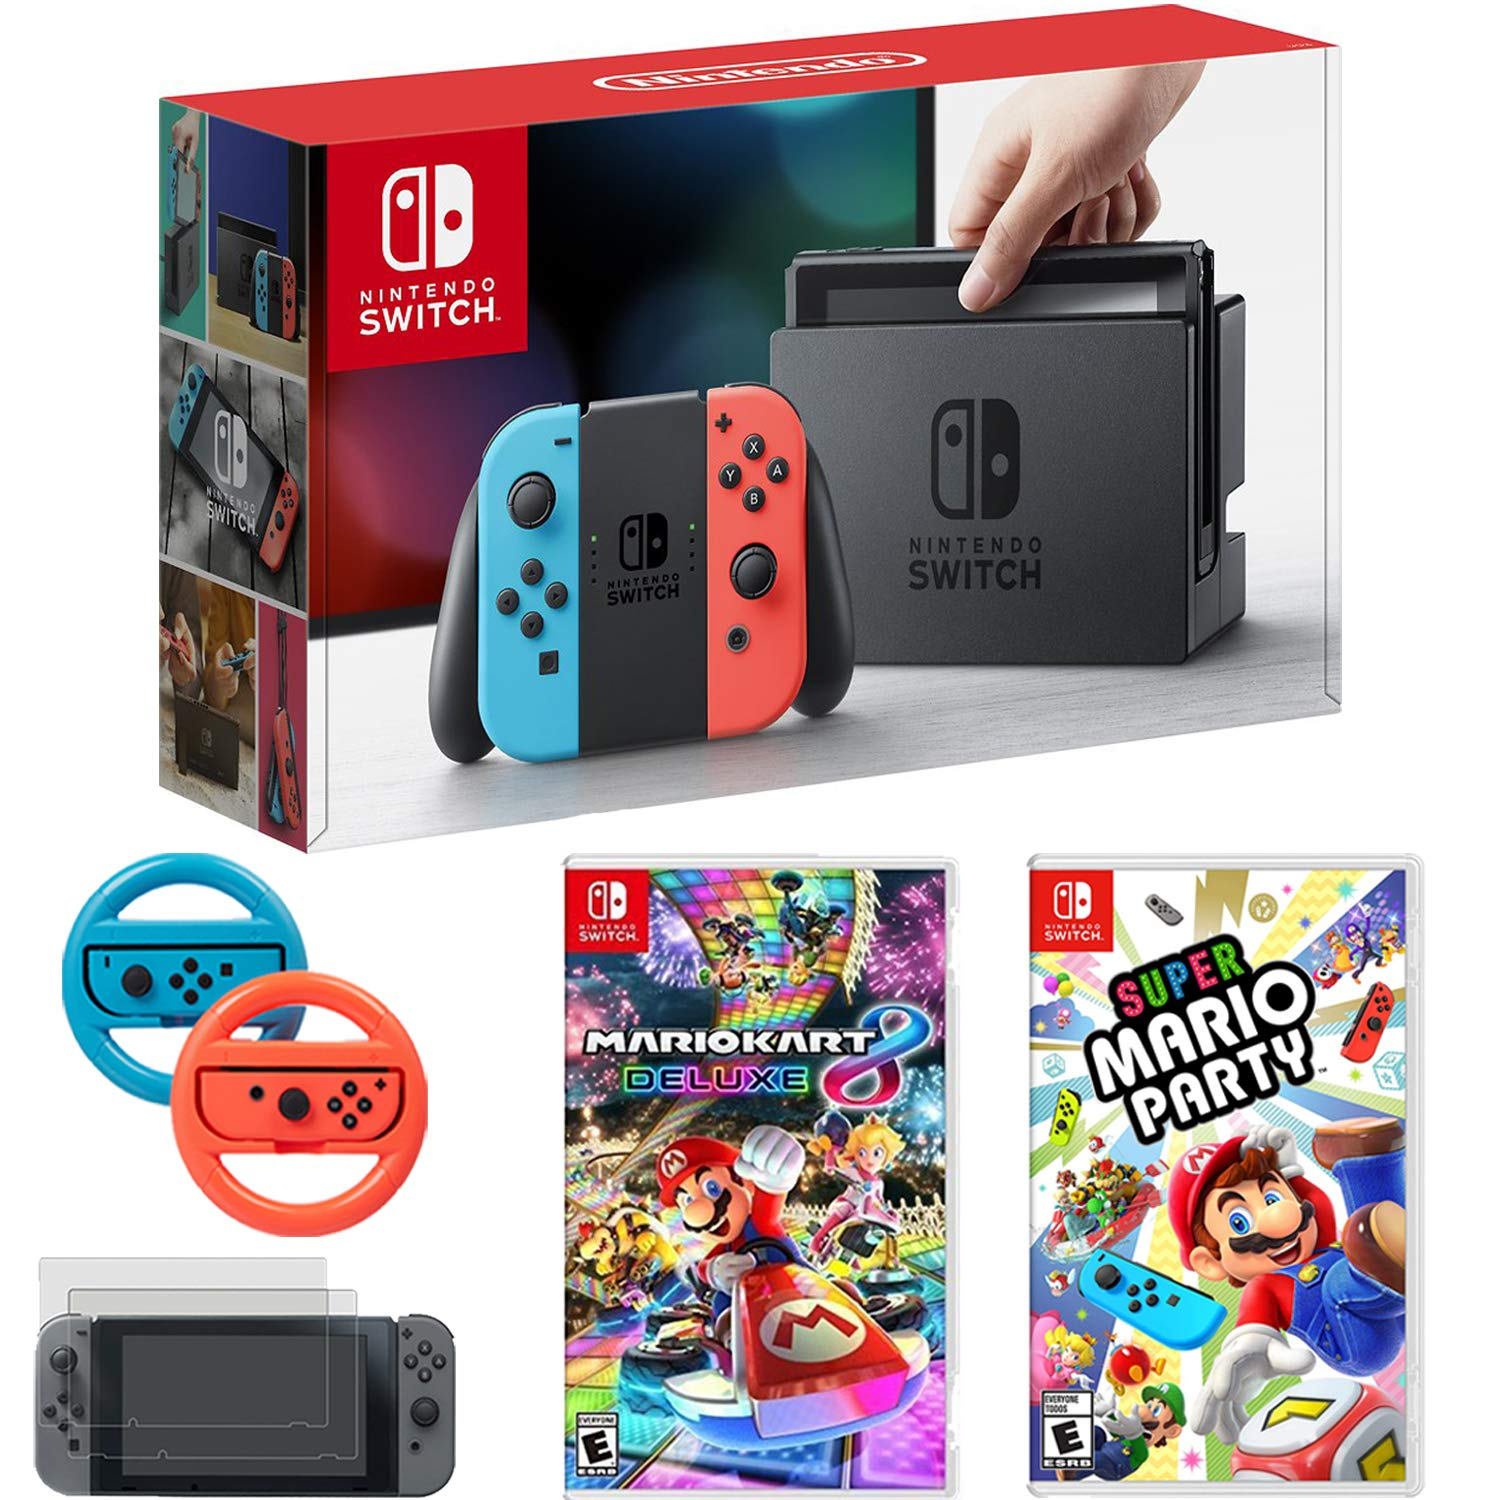 Nintendo Switch Console Blue/Red Joy Con + Mario Kart 8 Deluxe, Super Mario Party & More